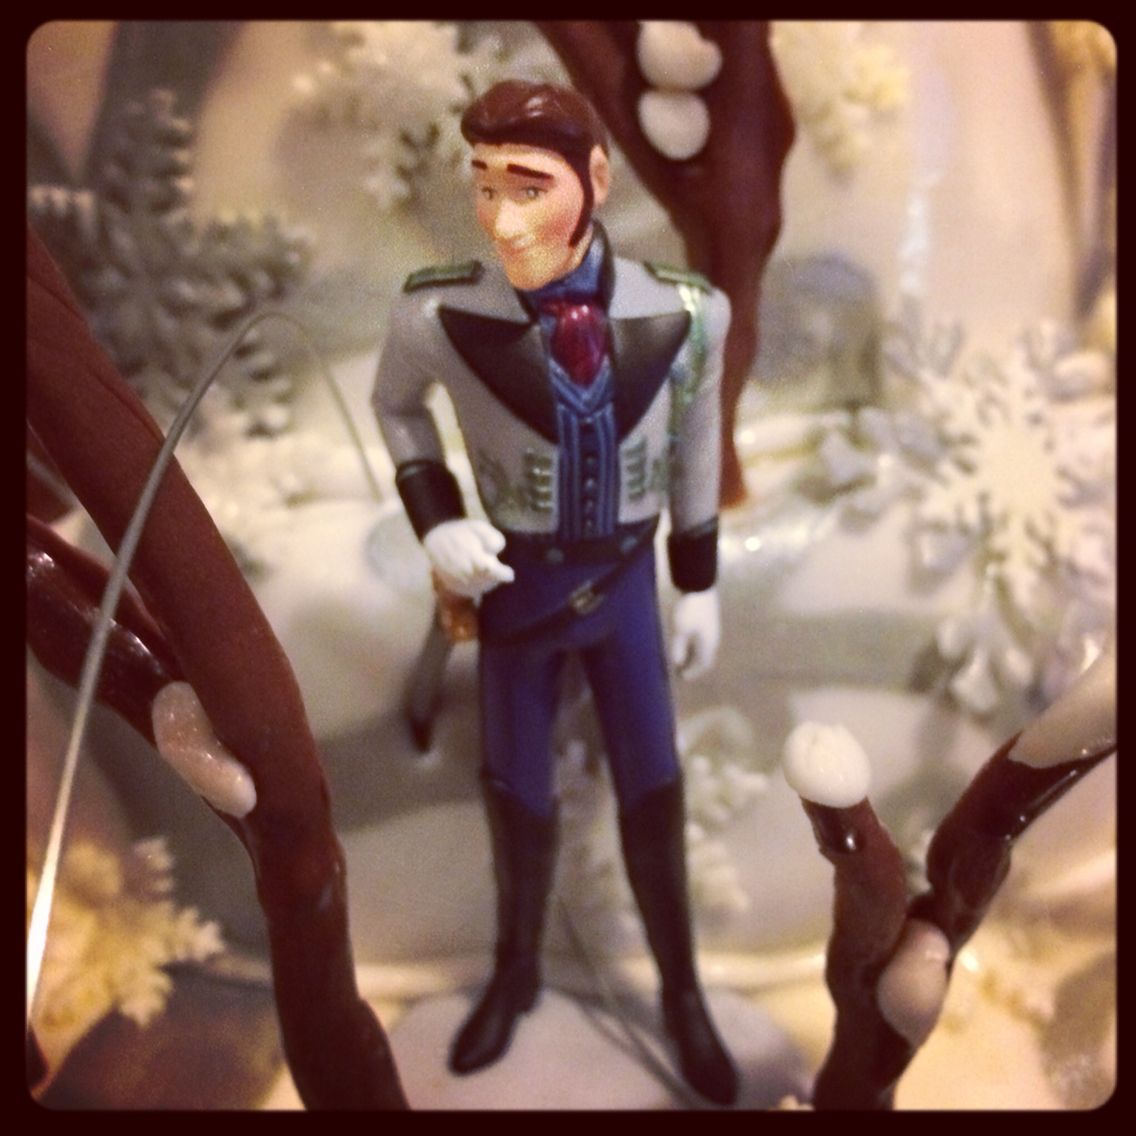 Hans in the forest/mountain Disney frozen characters toy caketopper by chenjezzycoolcakes